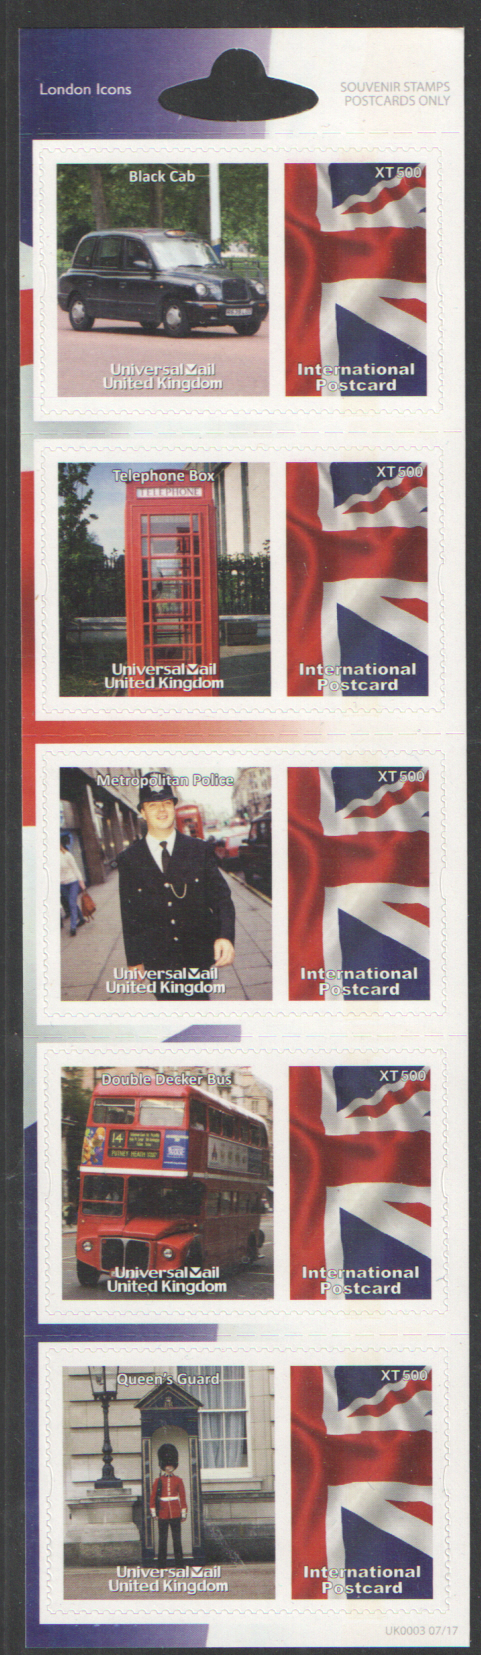 UK0003 London Icons Universal Mail Stamps Dated: 07/17